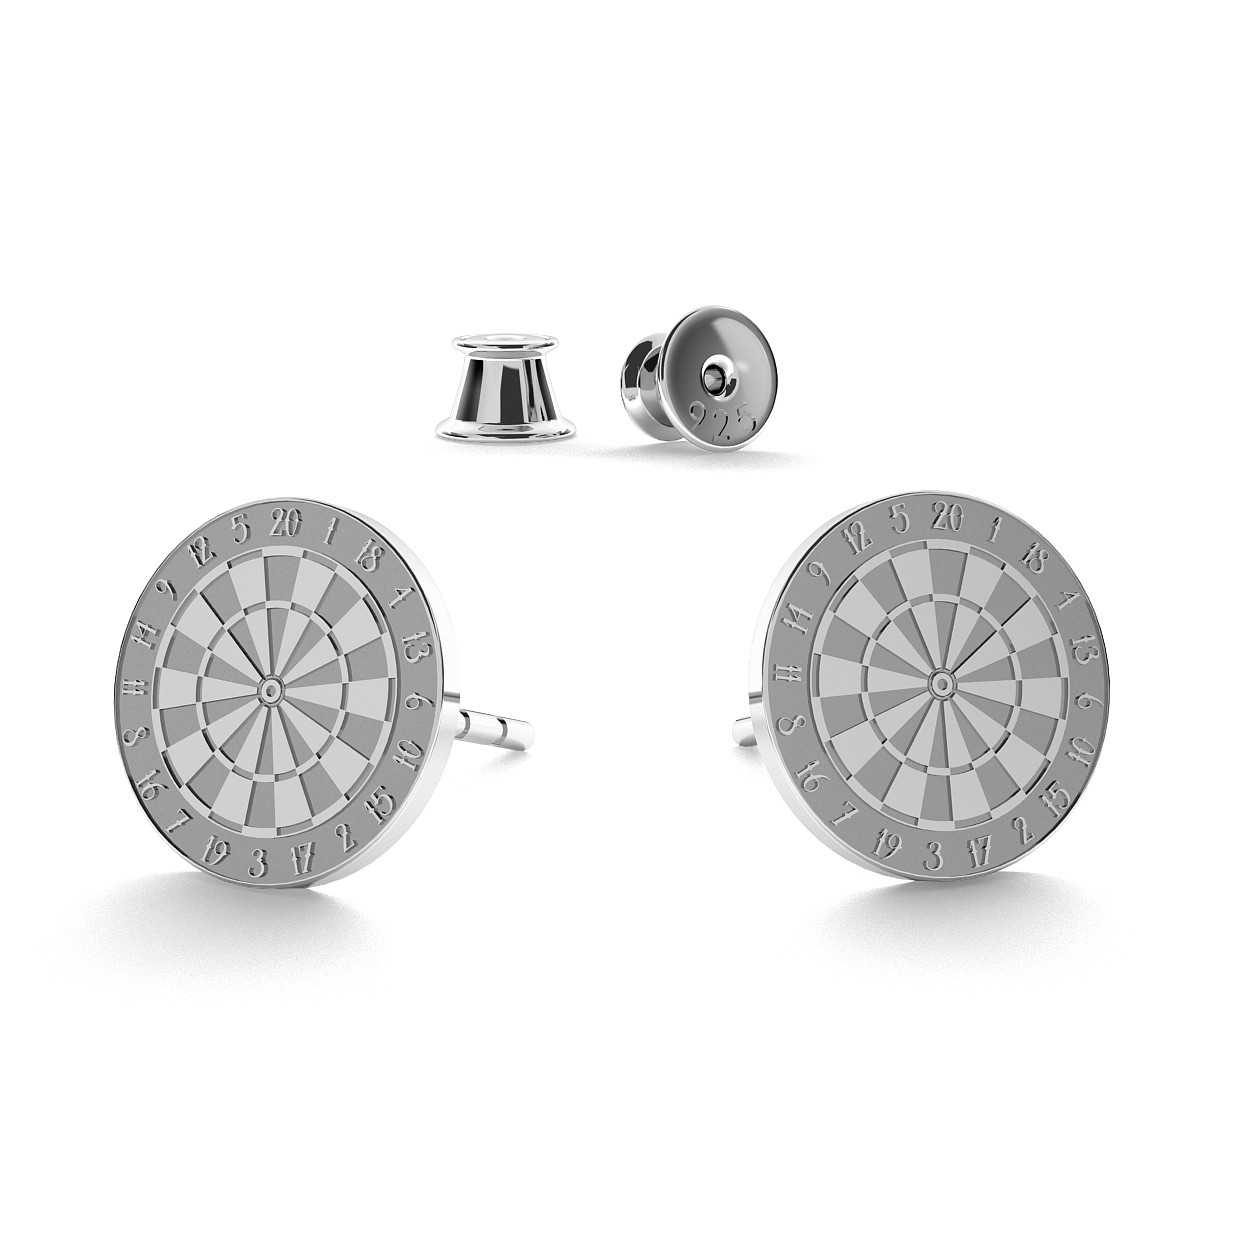 GIORRE DARTH CUP EARRINGS